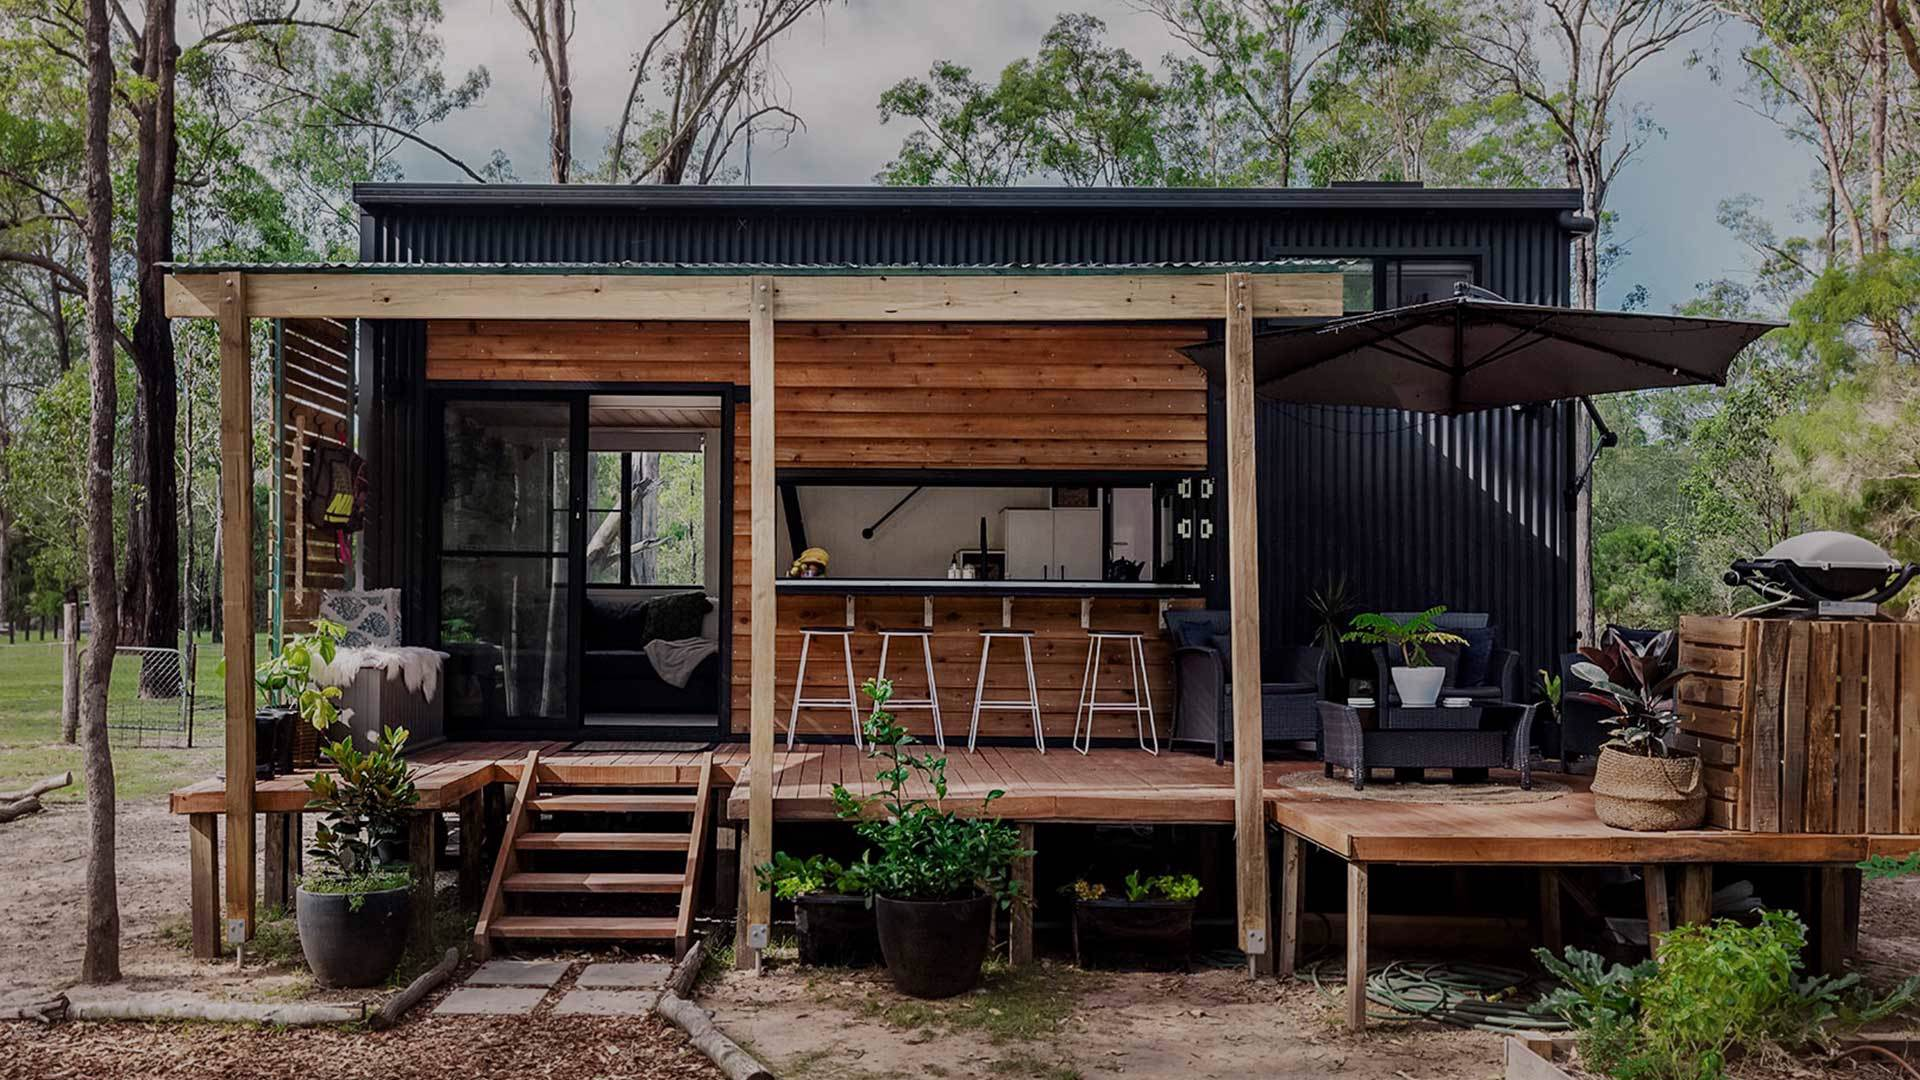 Tiny Houses in Australia for Sale - Aussie Tiny Houses